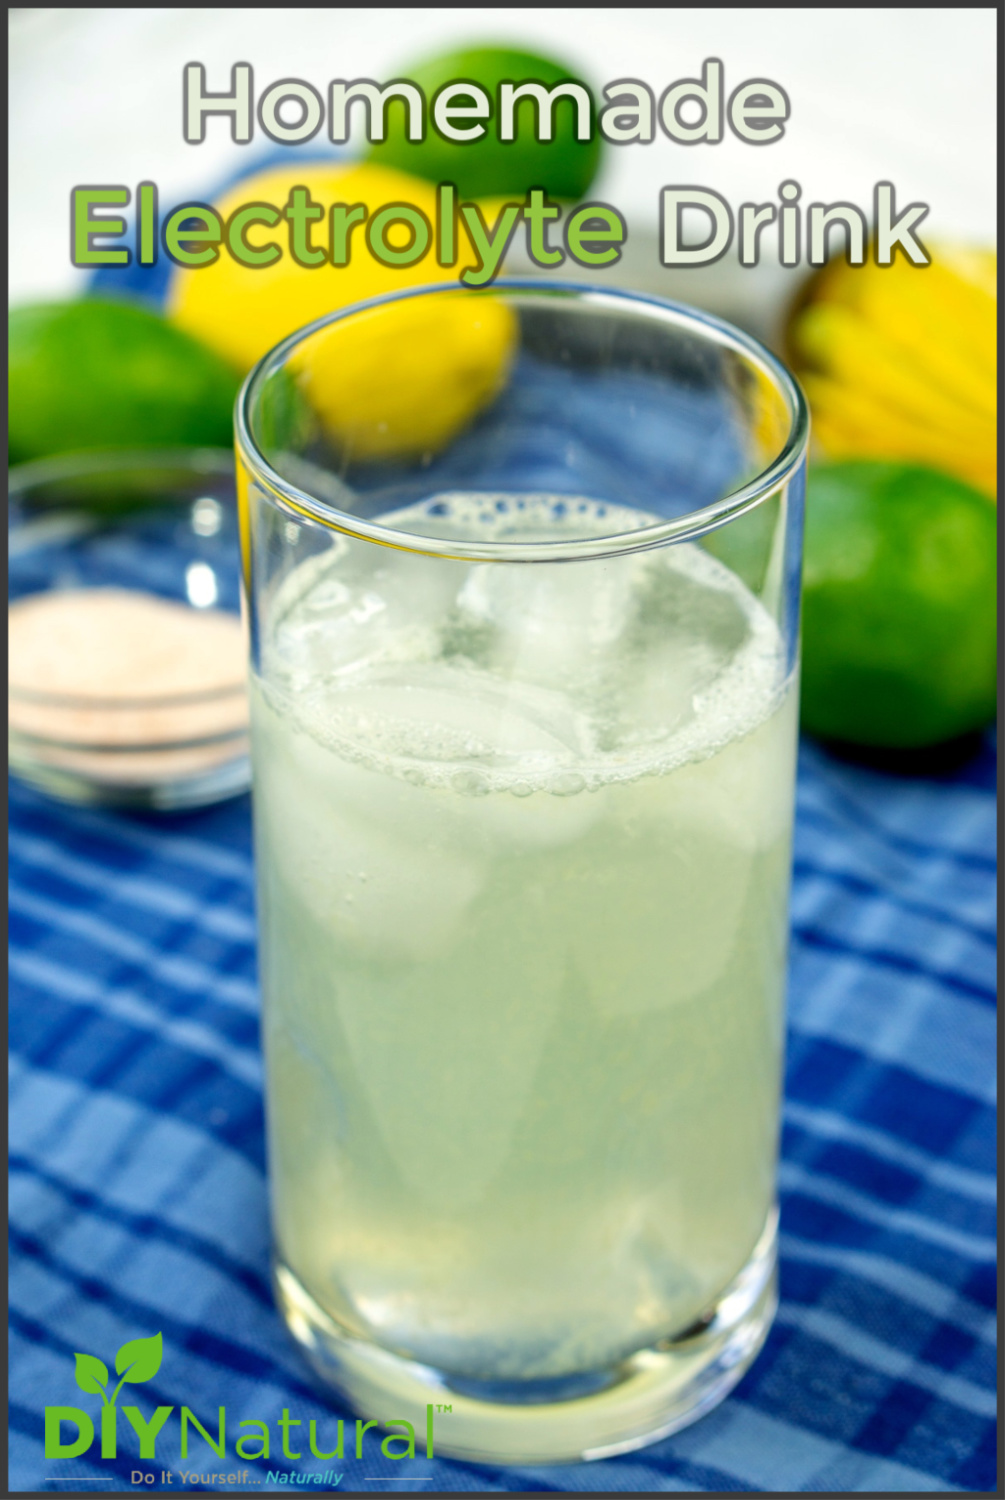 Homemade Electrolyte Drink: Healthy